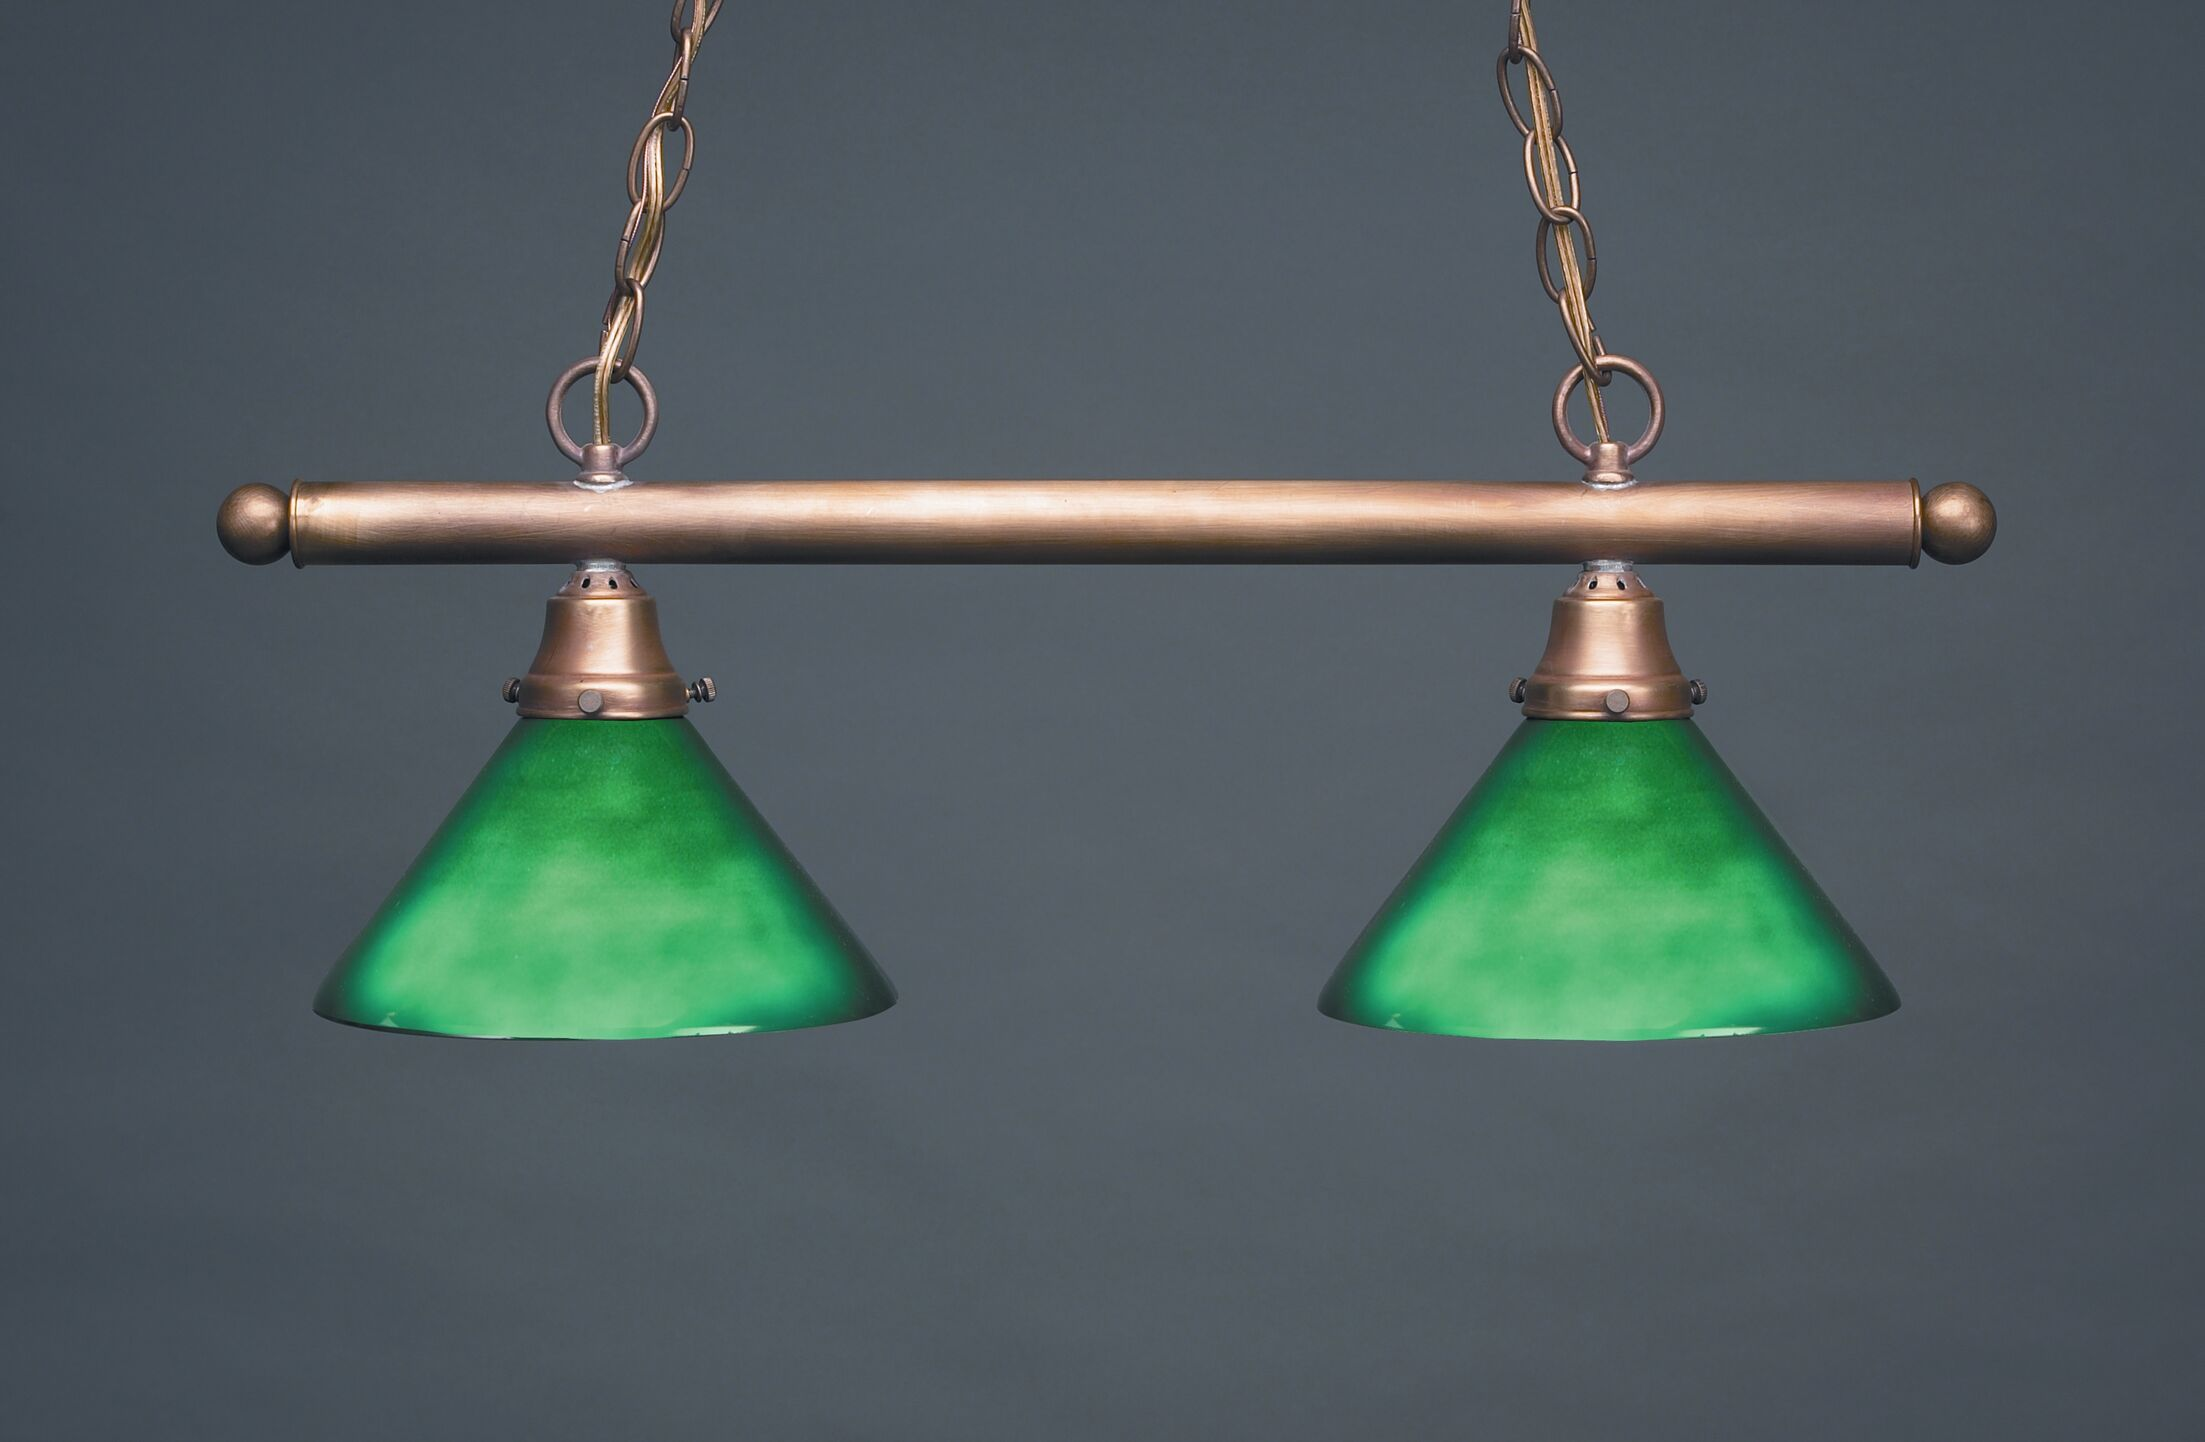 Pendant Two Medium Base Sockets Hanging Pendant Finish: Dark Antique Brass, Glass Type: 50G Green